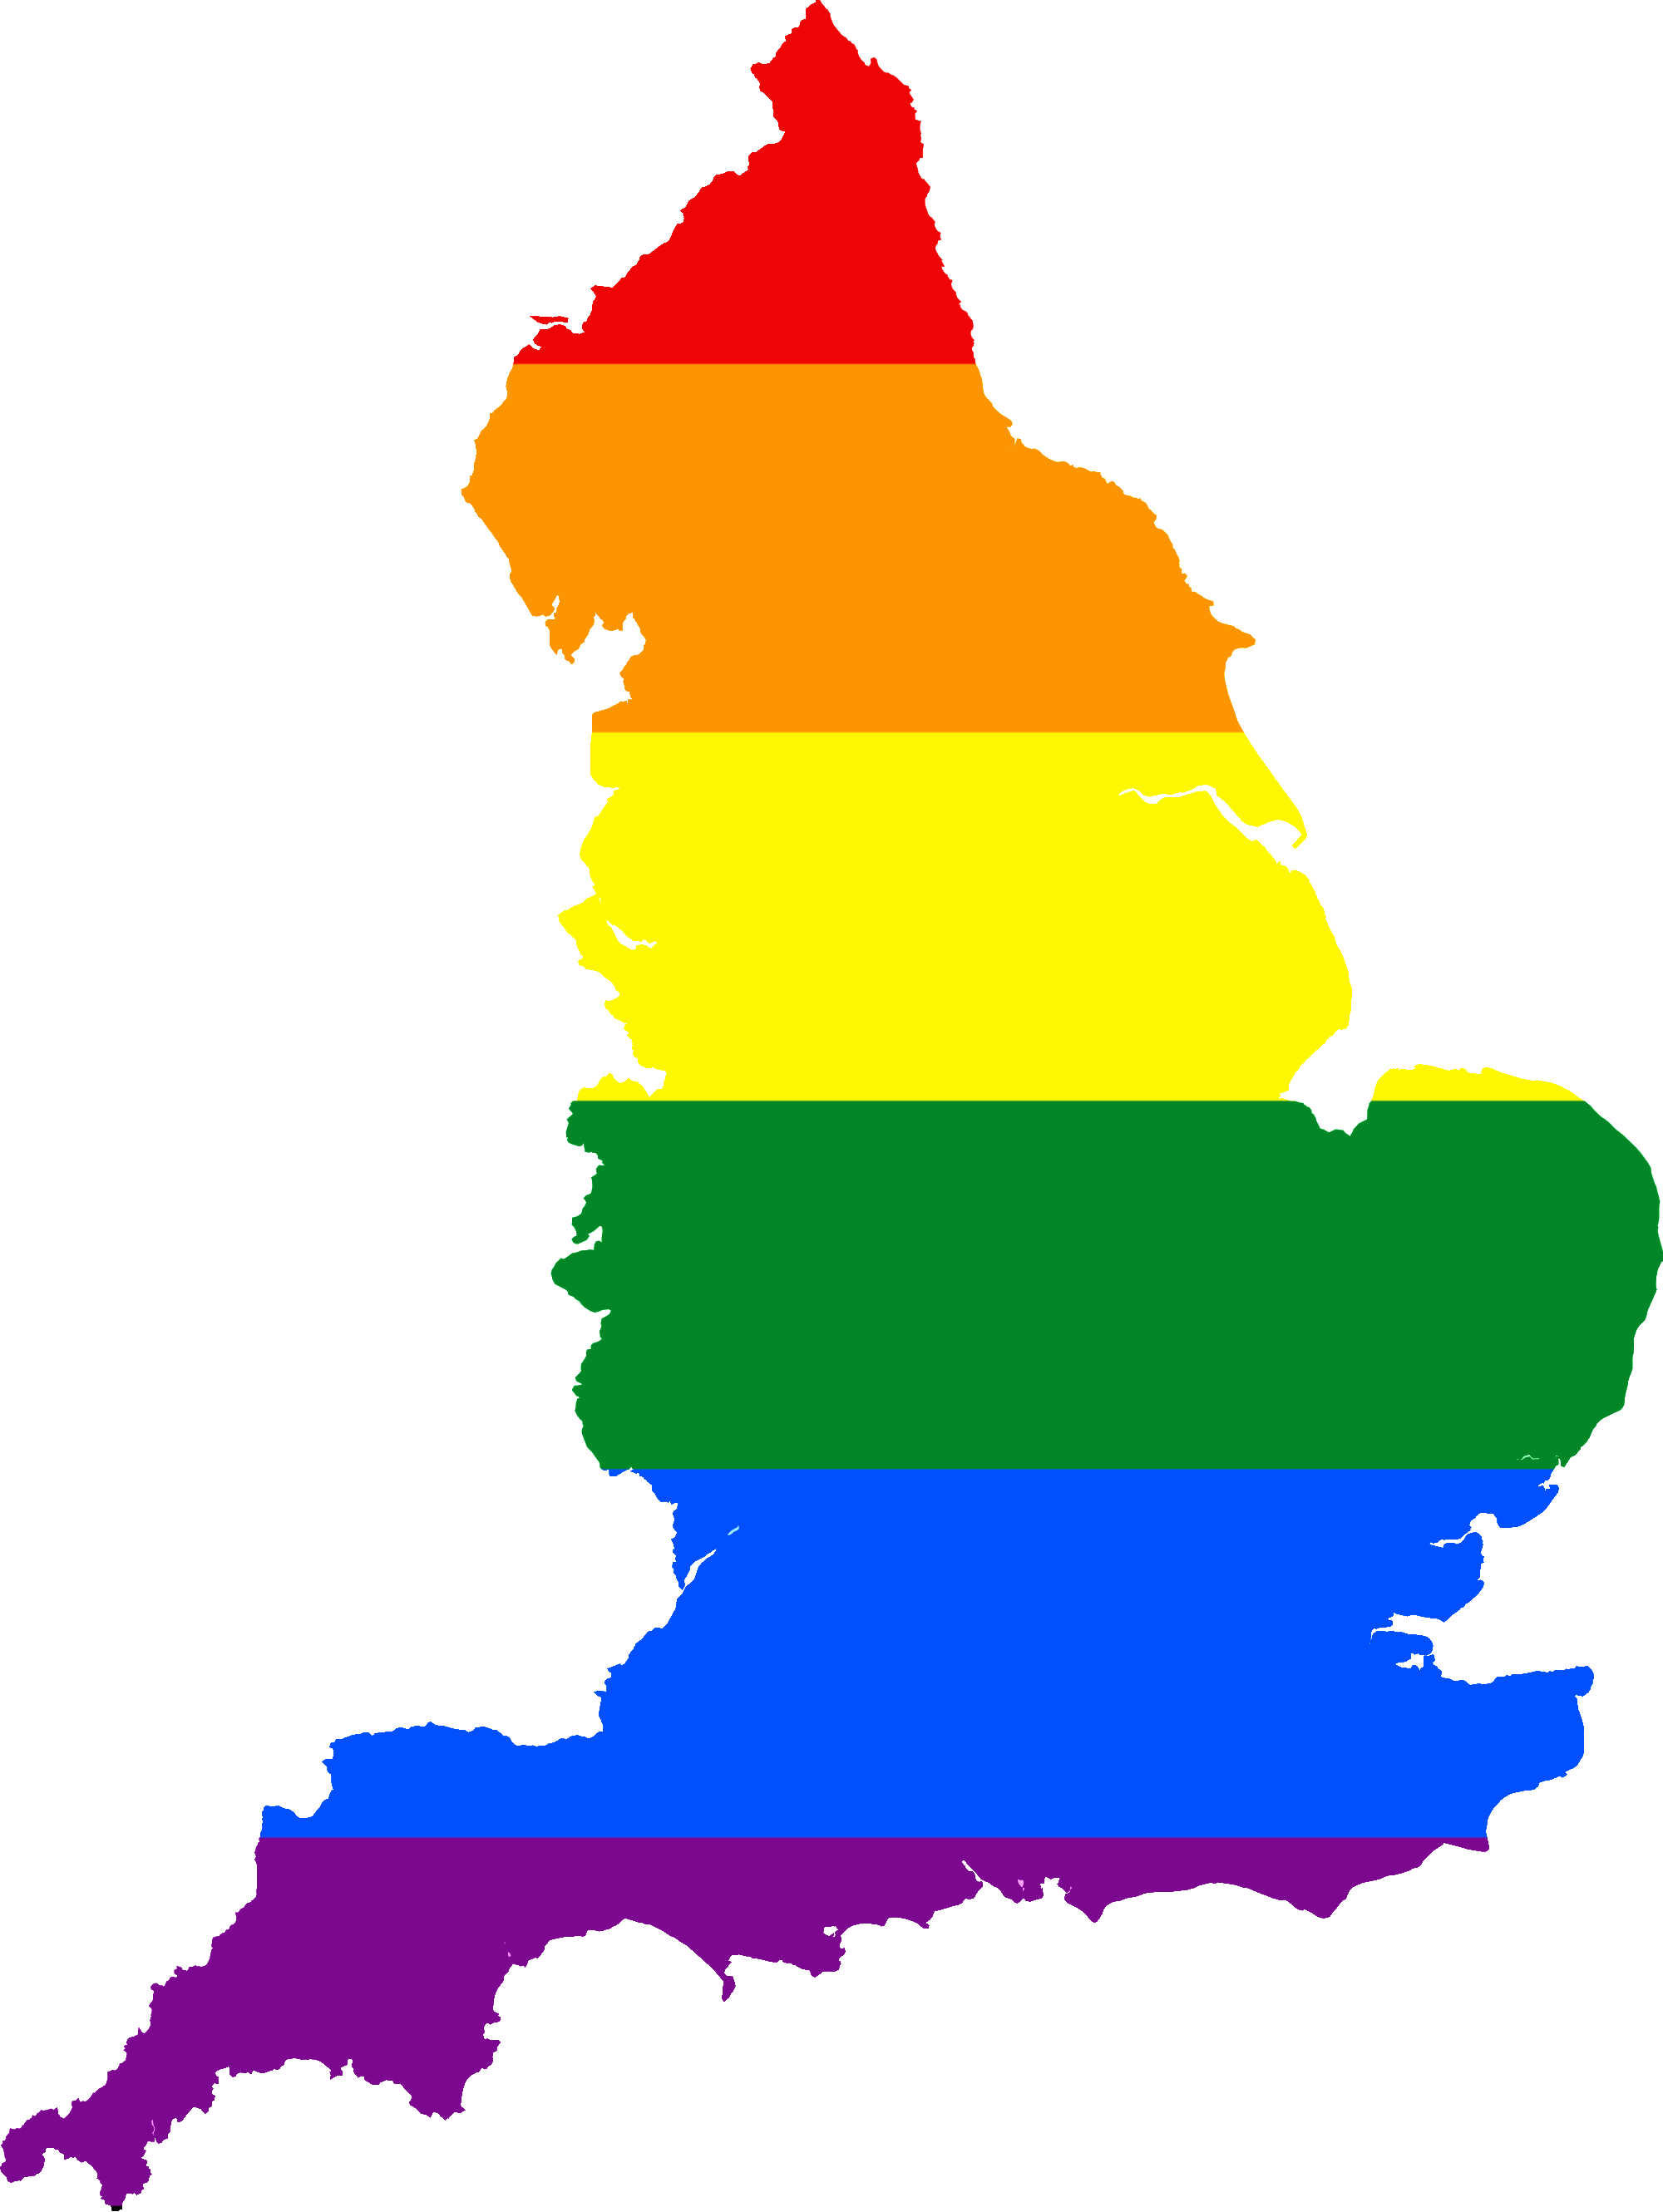 File:LGBT Flag map of England.png - Wikimedia Commons